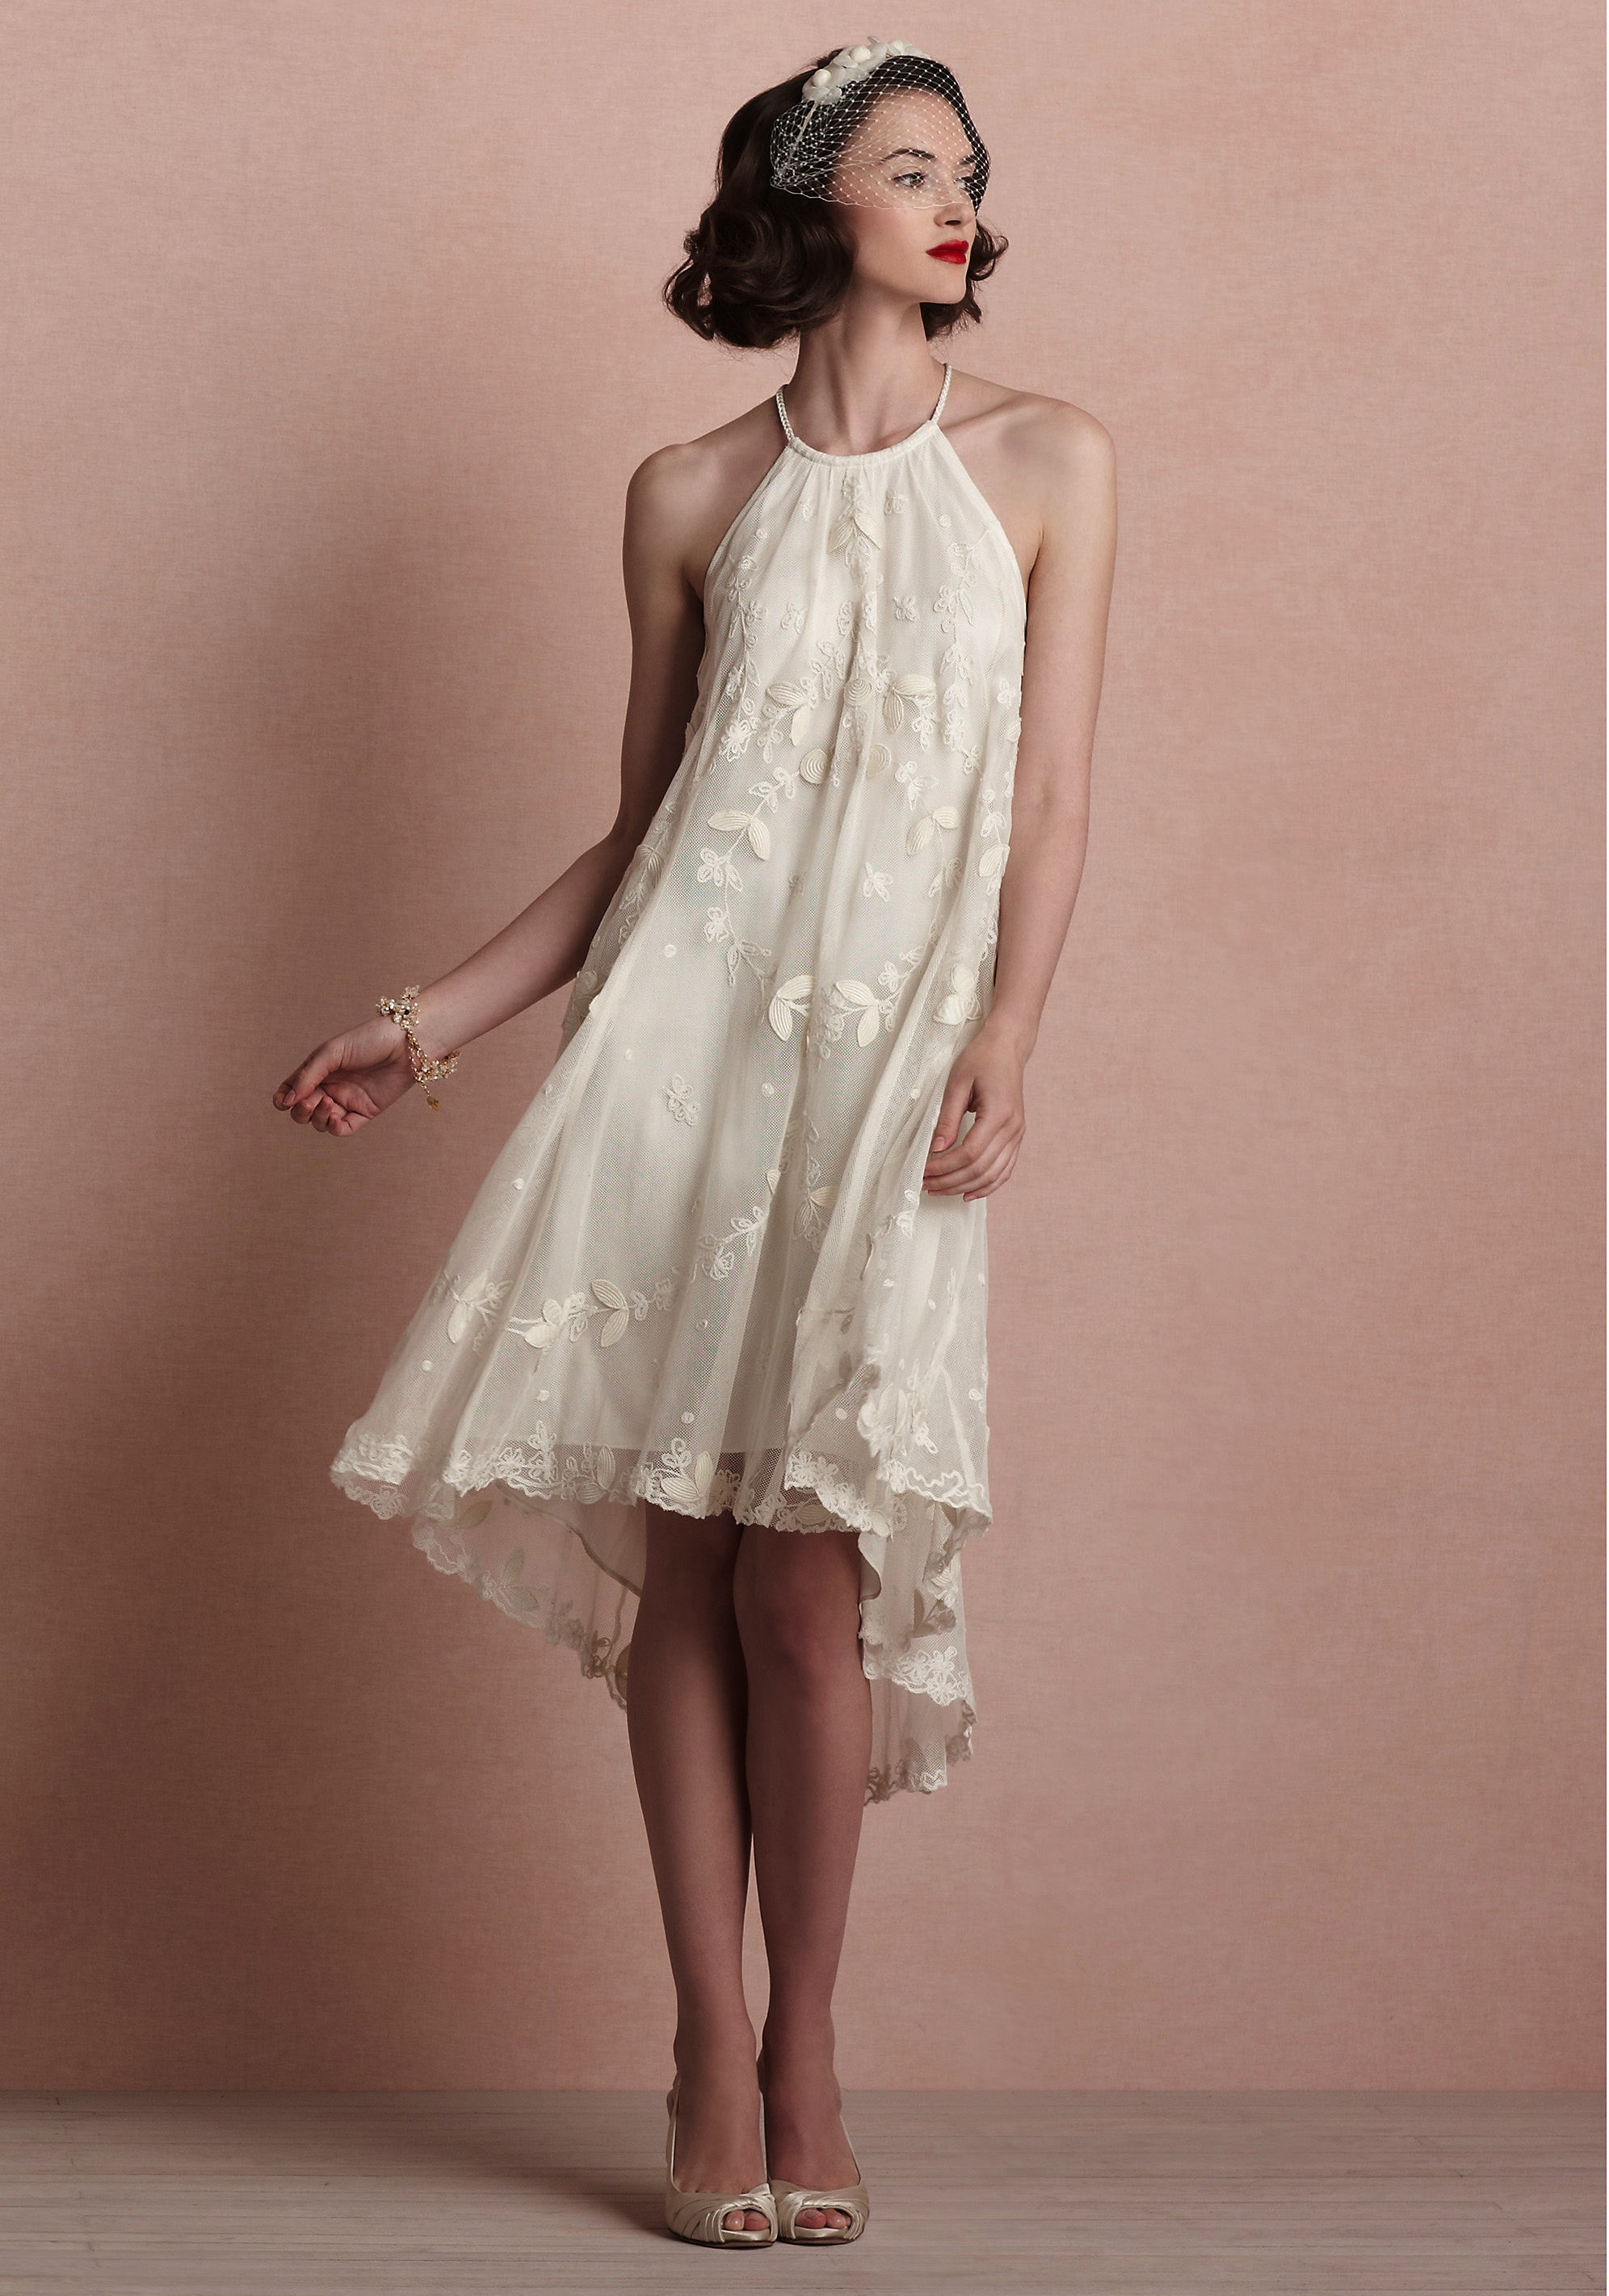 affordable wedding dresses oahu wedding dressing Charming And Affordable Destination Wedding Dressing From Bhldn